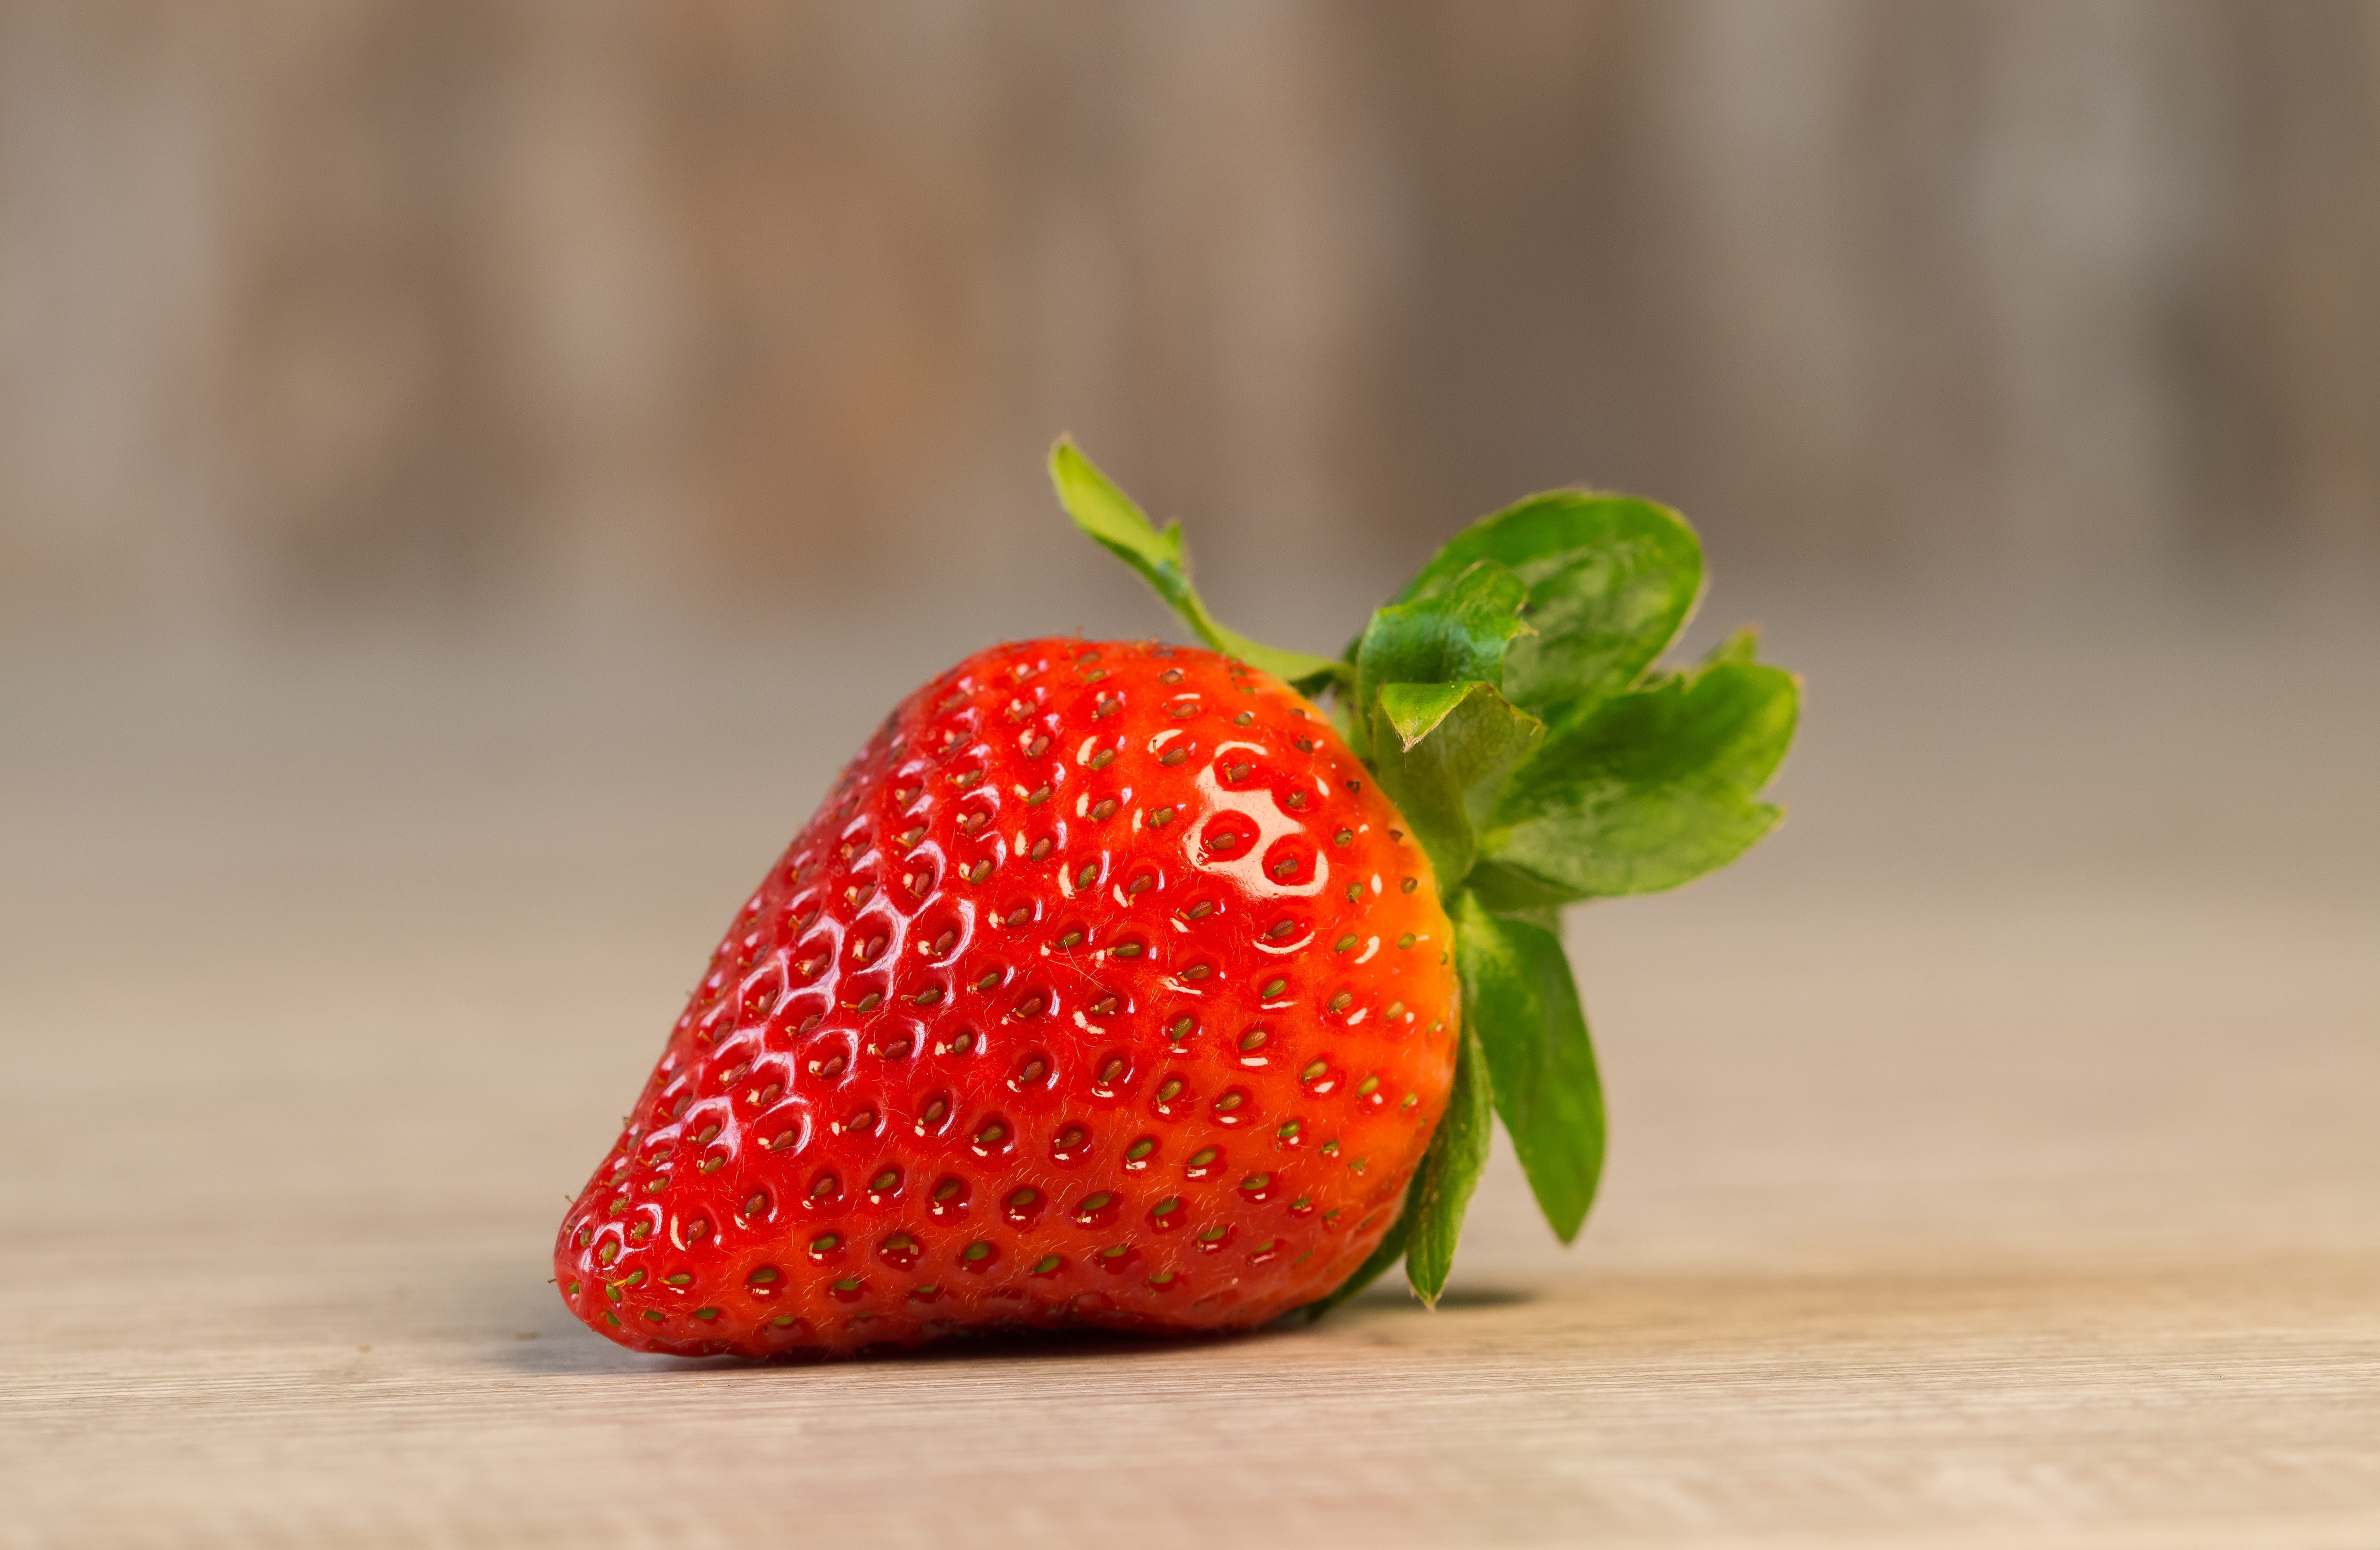 Strawberry Fruit on Brown Wooden Surface, Berry, Sweet, Strawberry, Ripe, HQ Photo